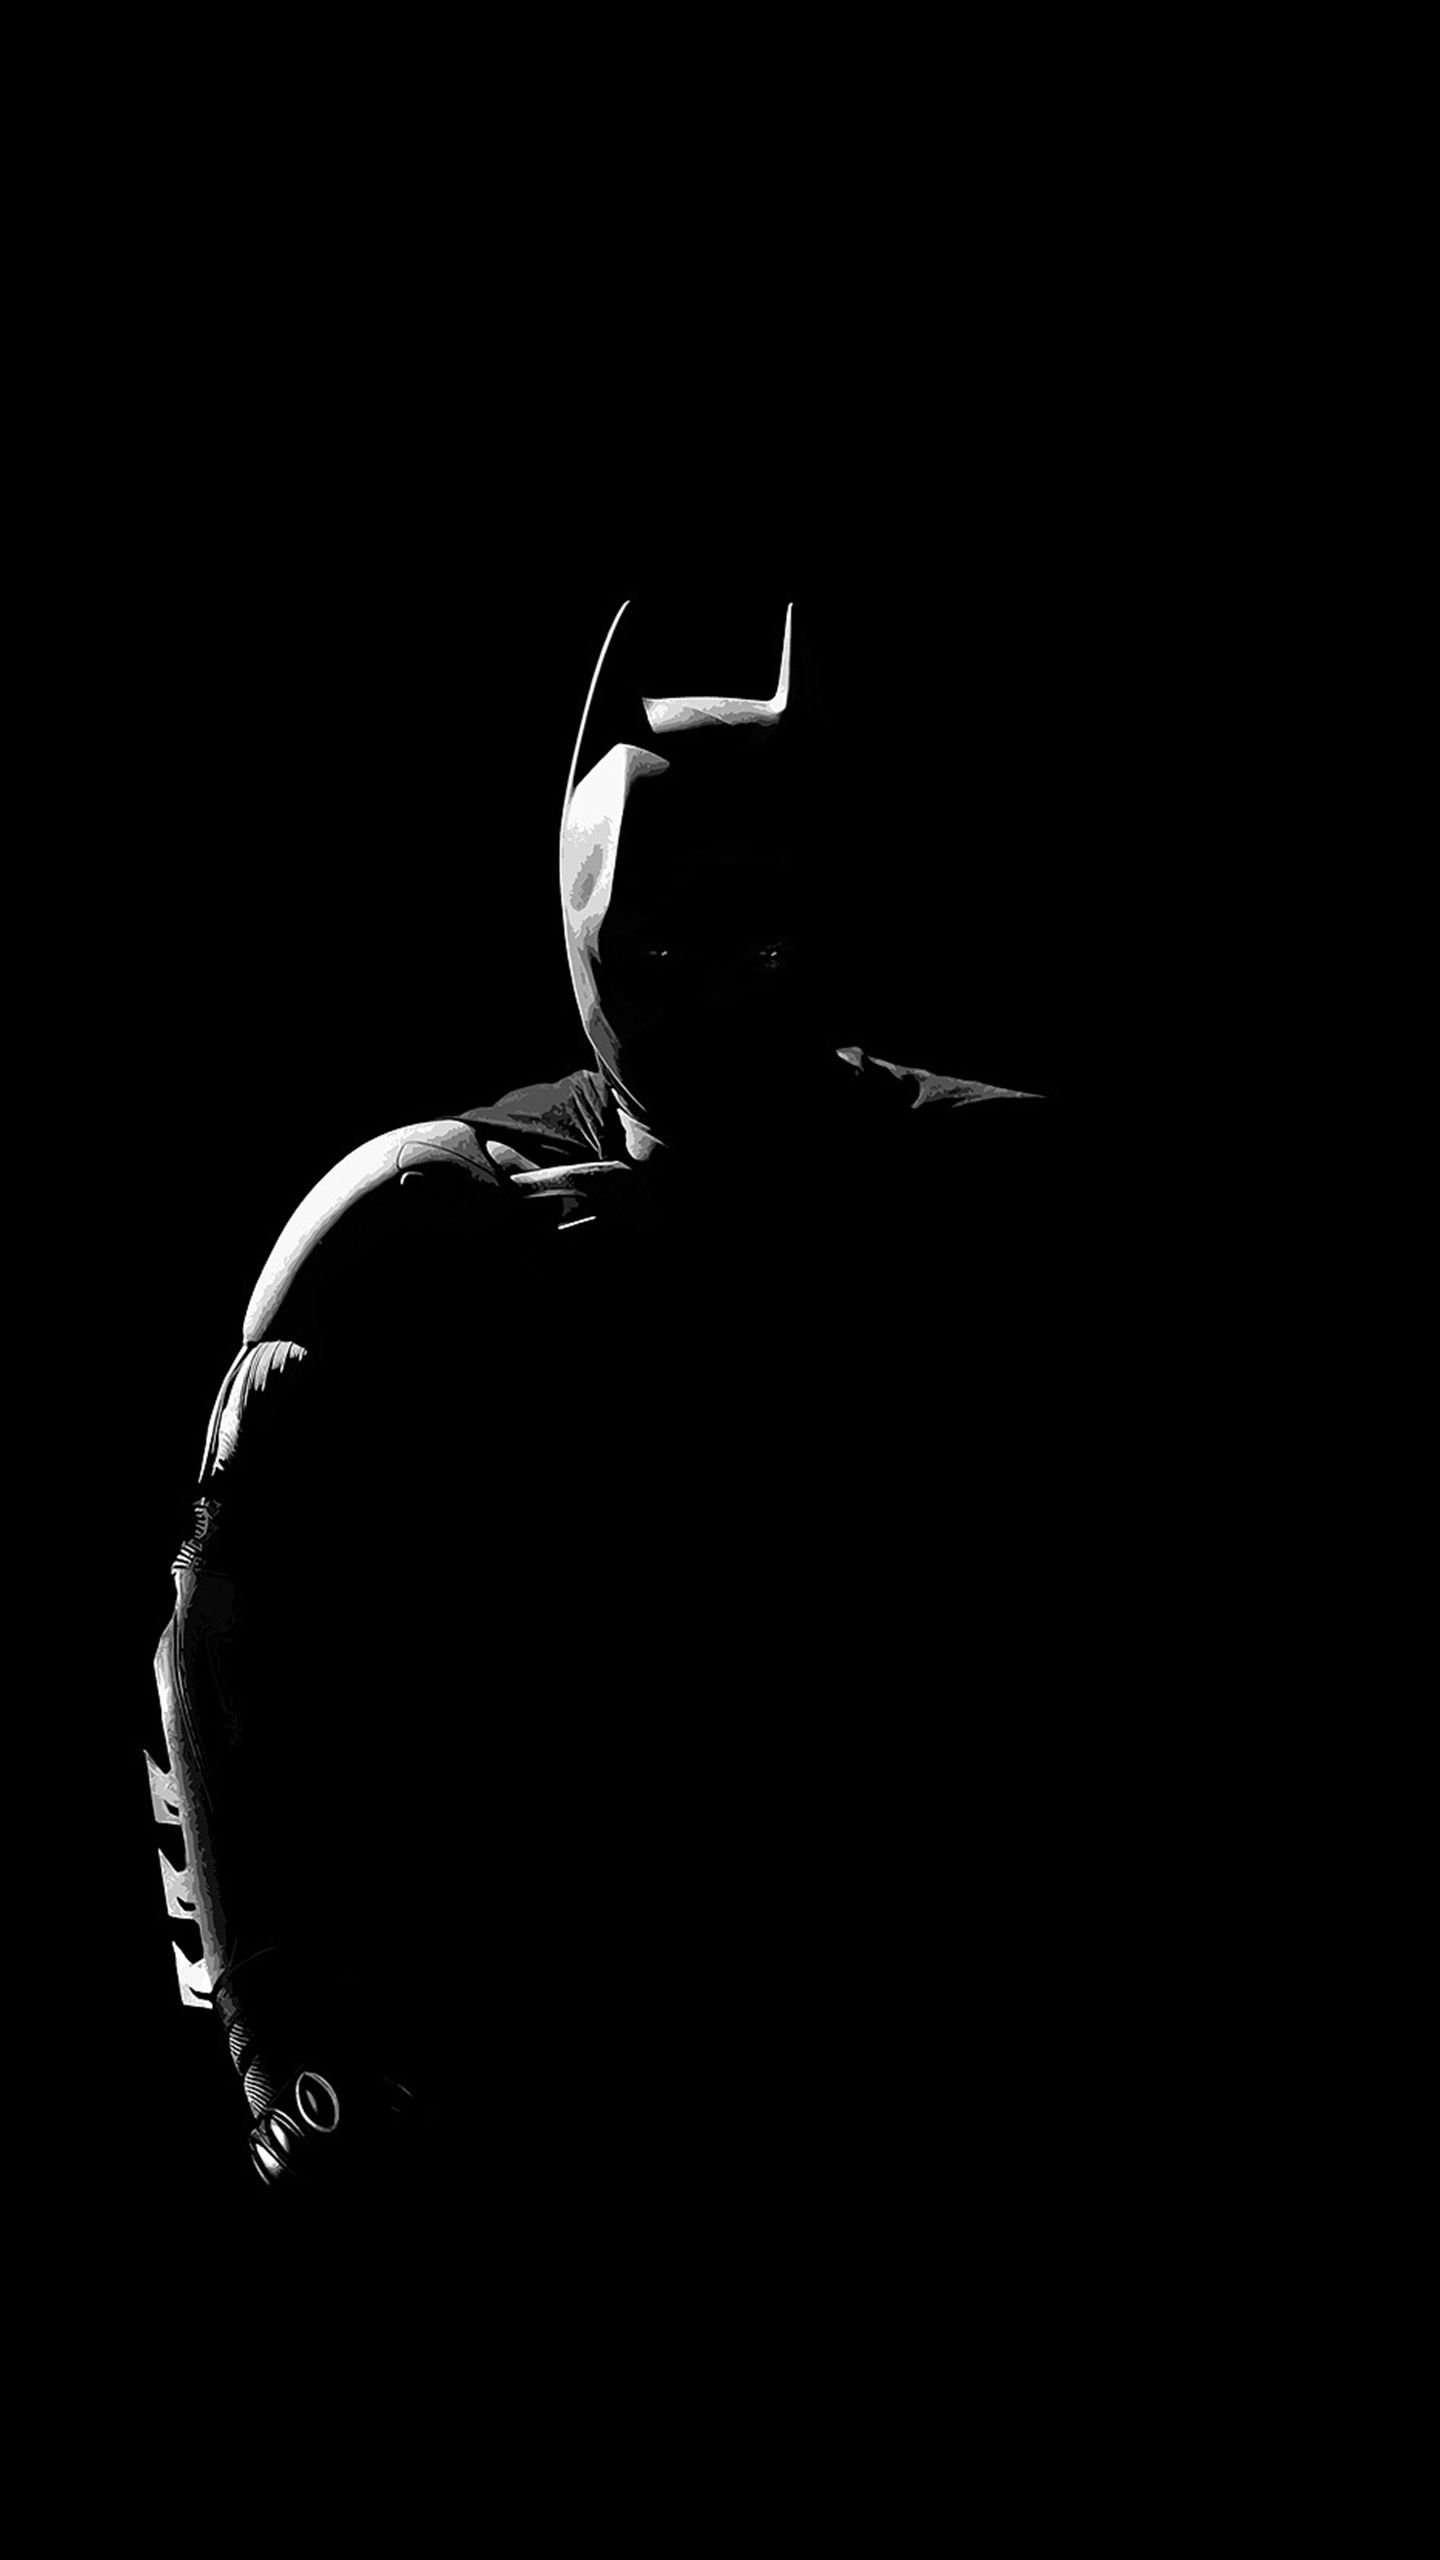 Dark Knight Amoled Lockscreen Homescreen Wallpapers Pinterest